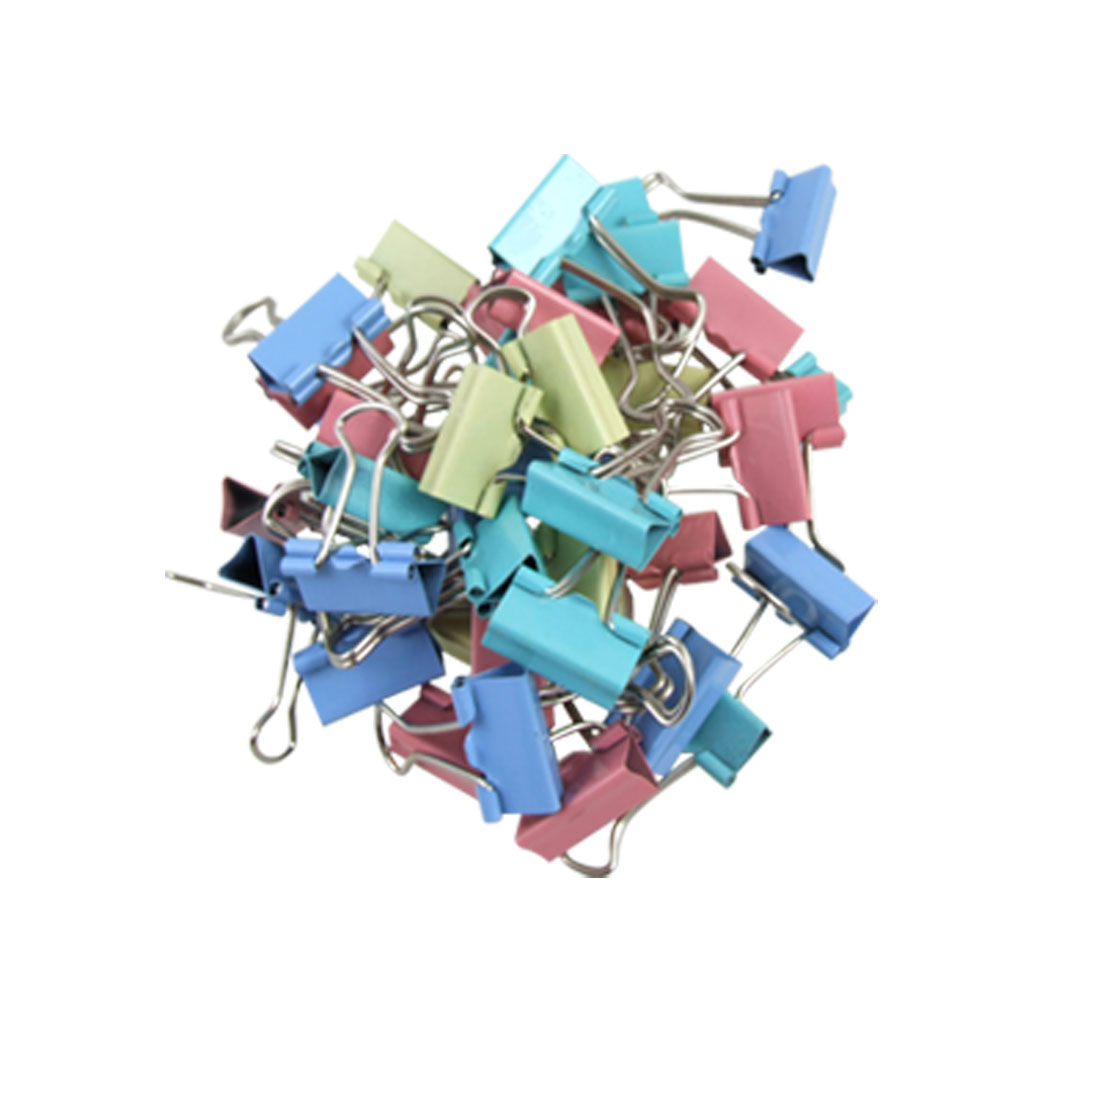 40Pcs Office Assorted File Organize Metal Binder Clips 19mm